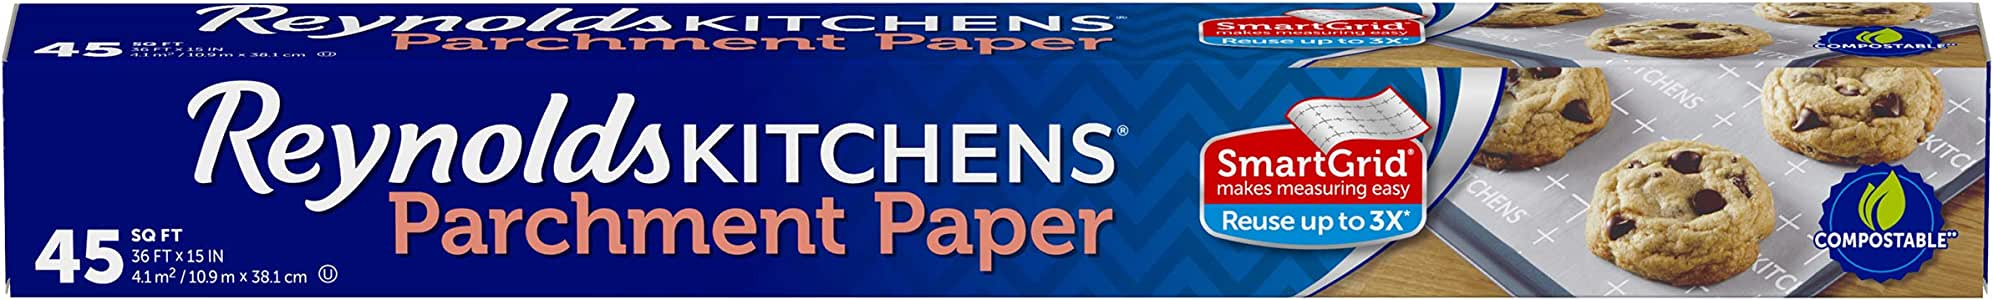 Reynolds Kitchens Parchment Paper, 15 in, 45 Sq Ft